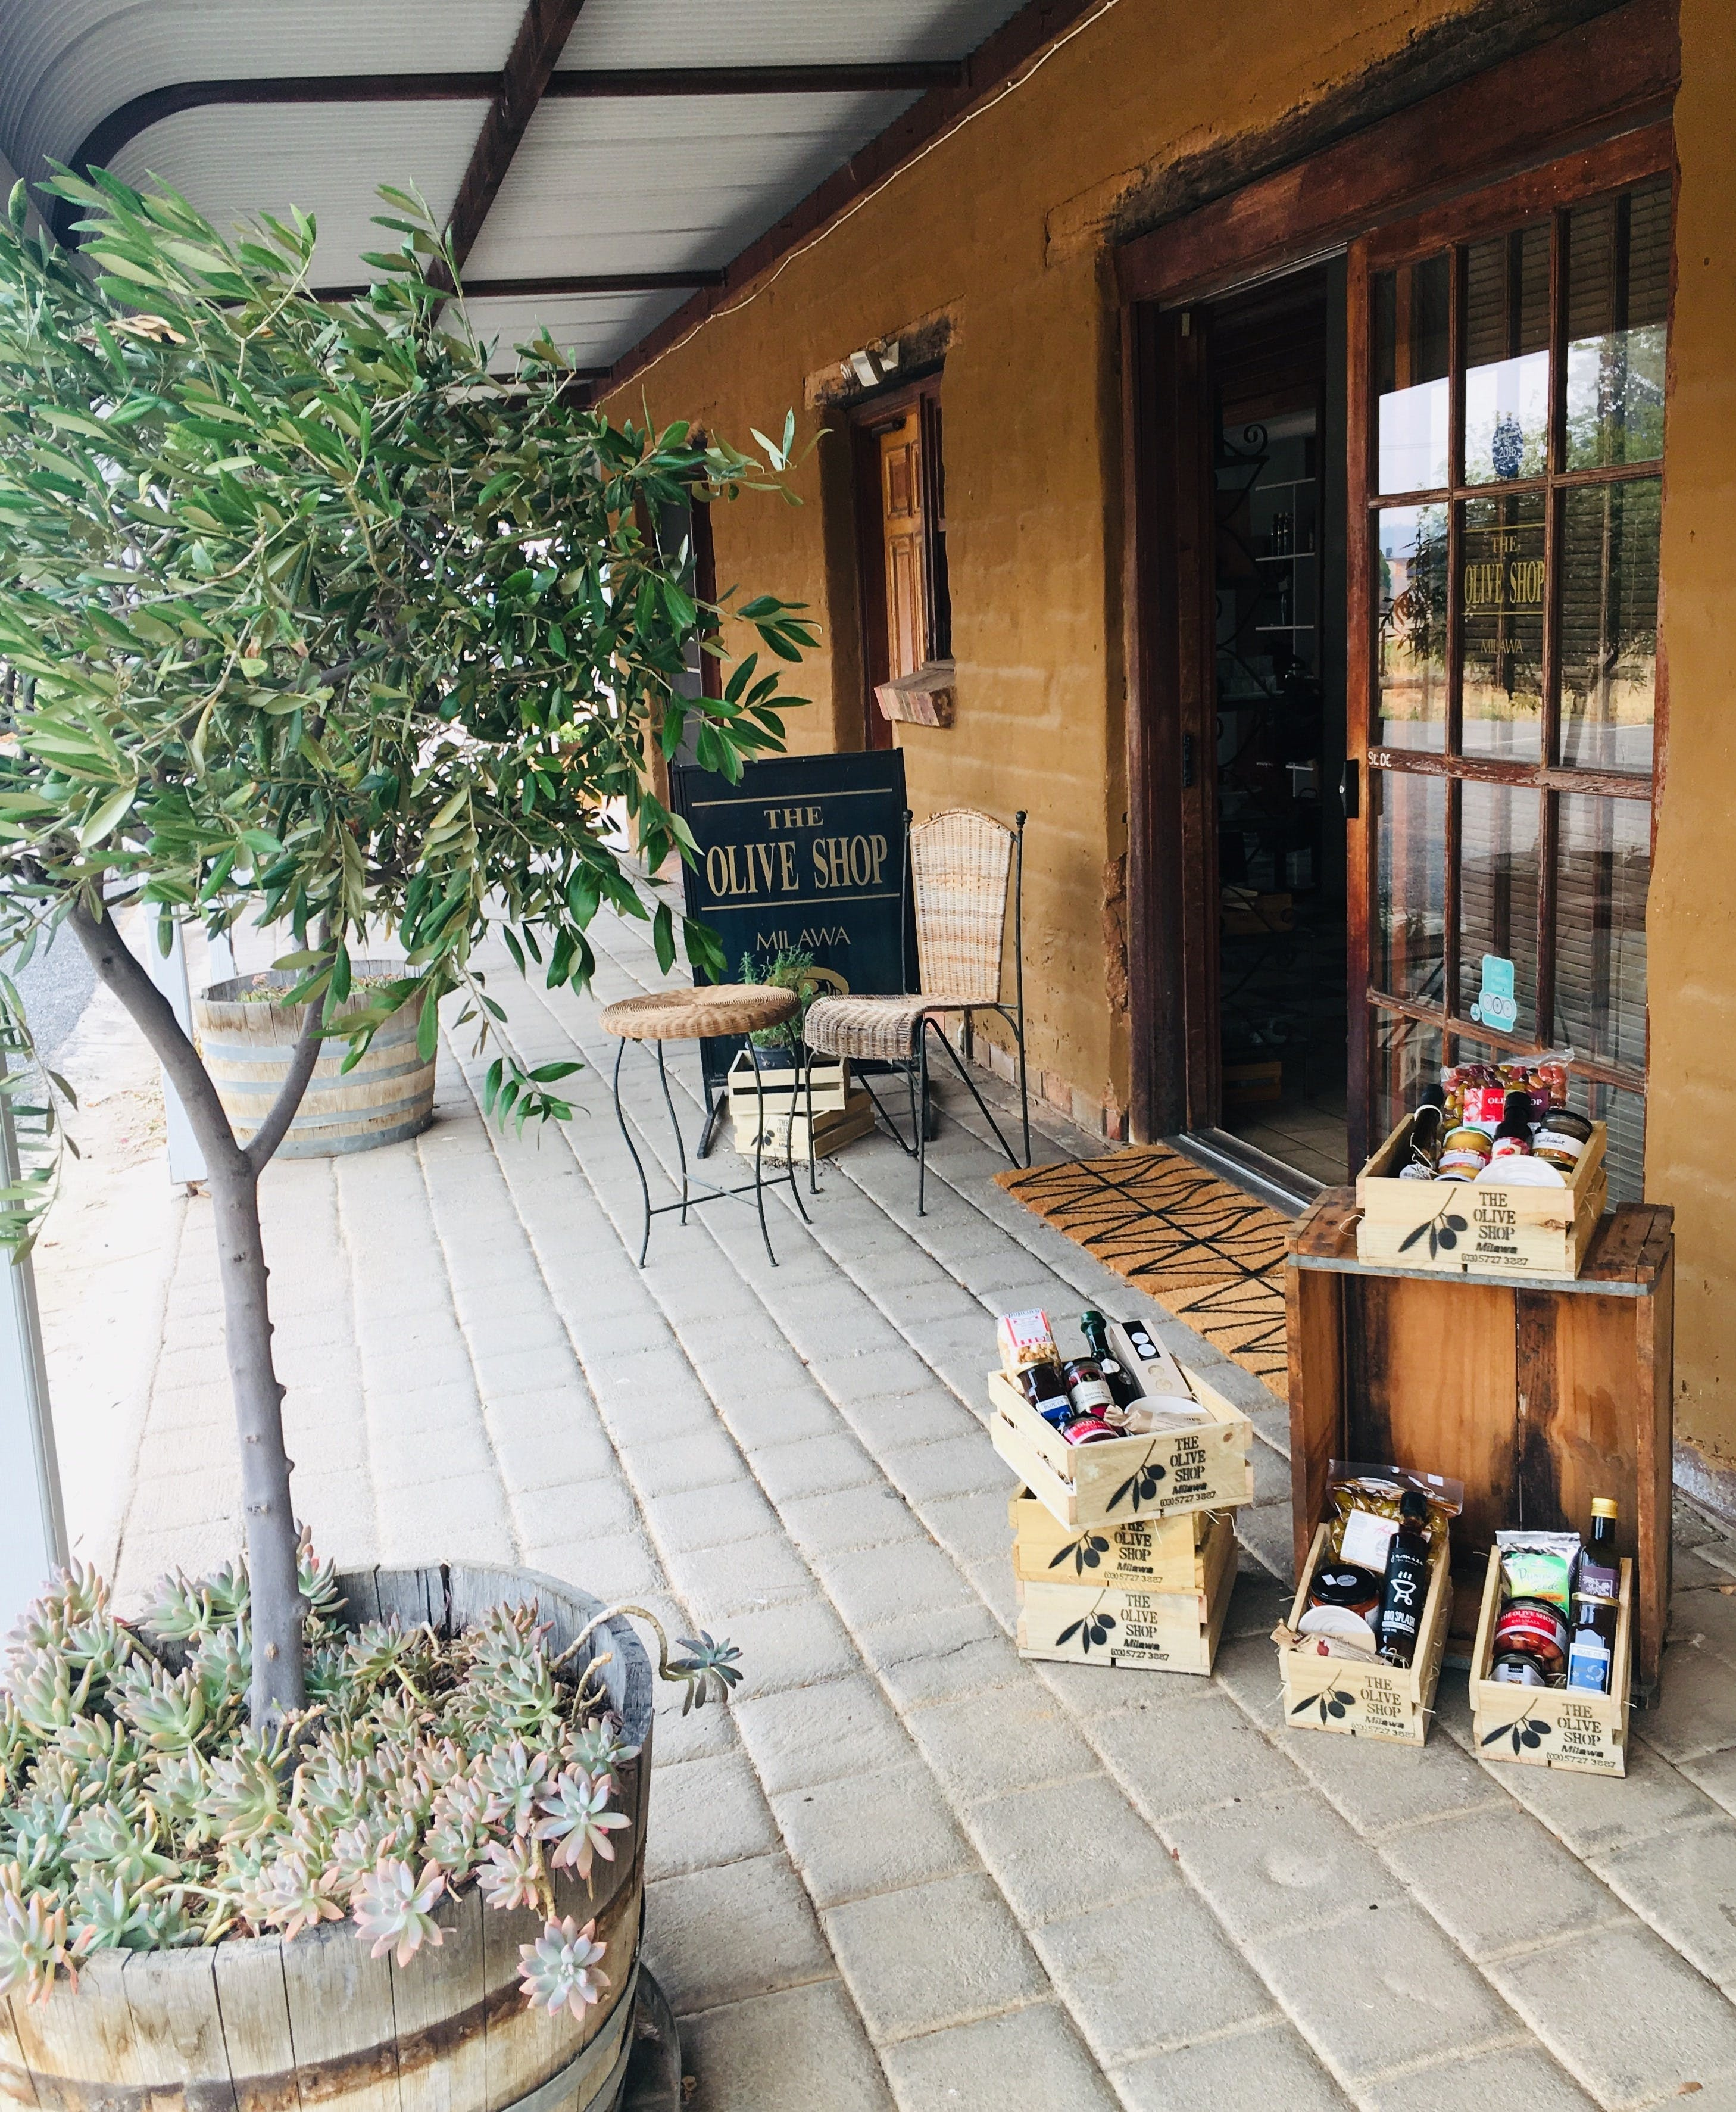 The Olive Shop - Milawa - ACT Tourism